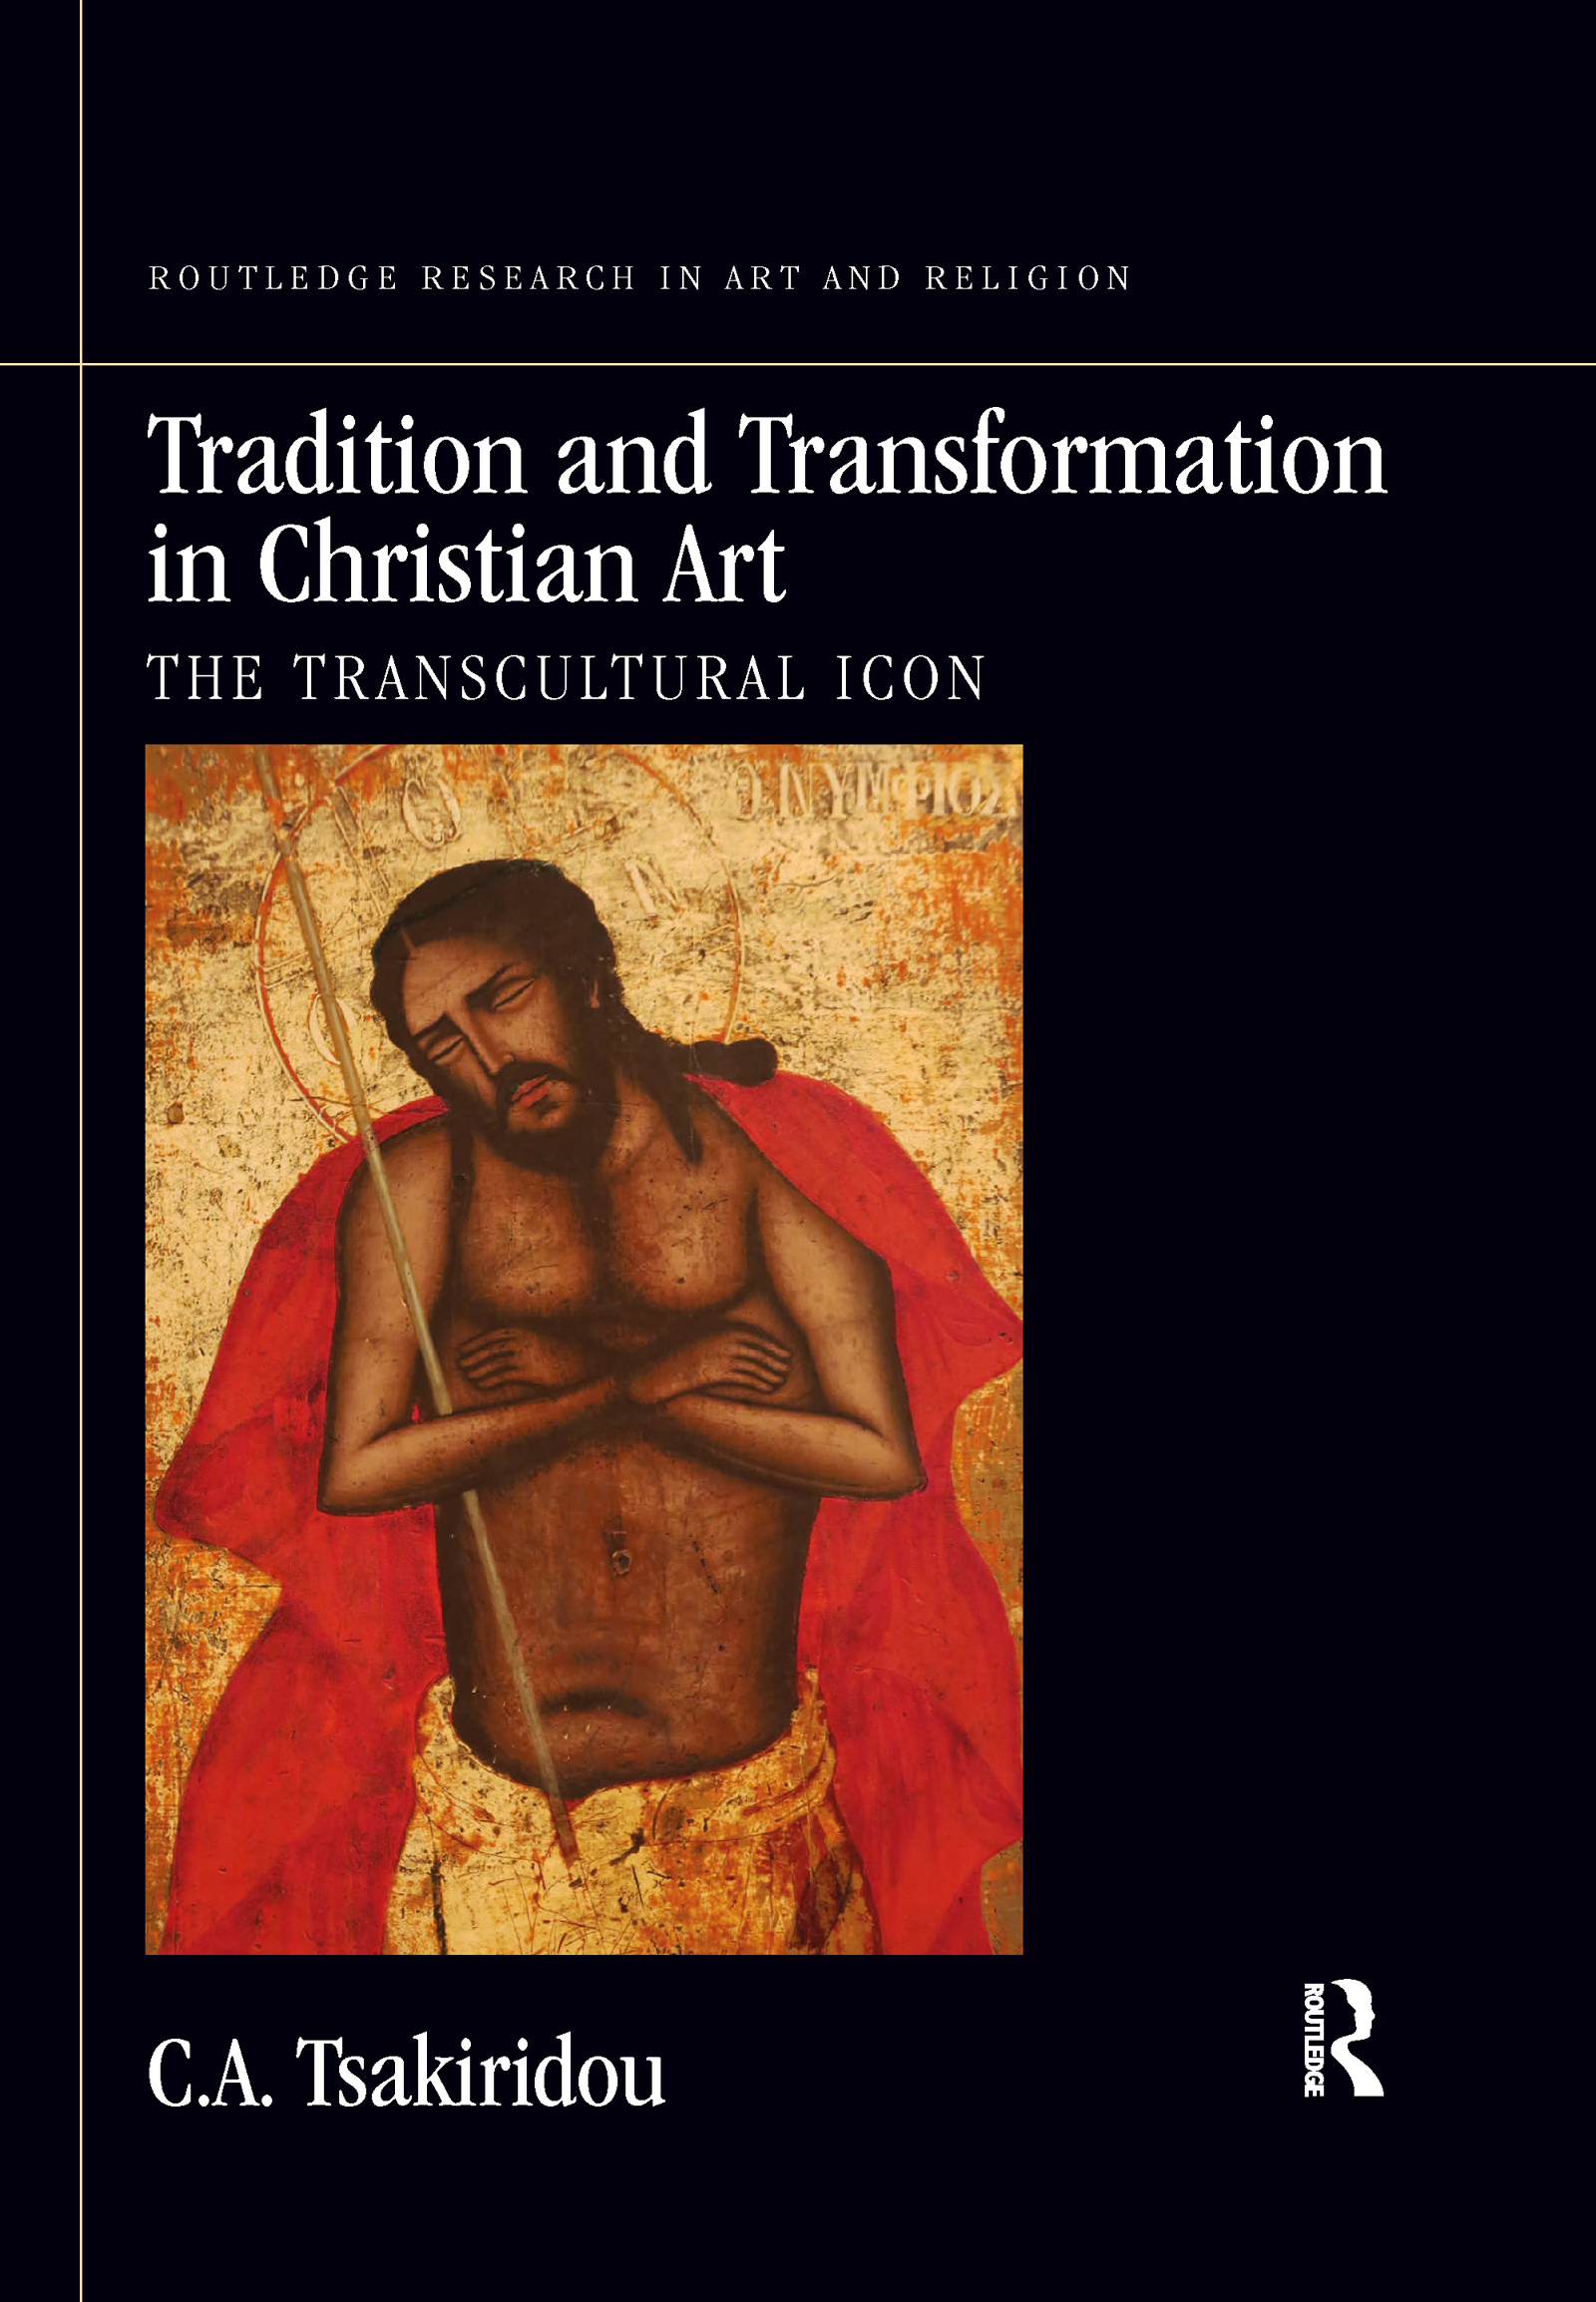 Tradition and Transformation in Christian Art